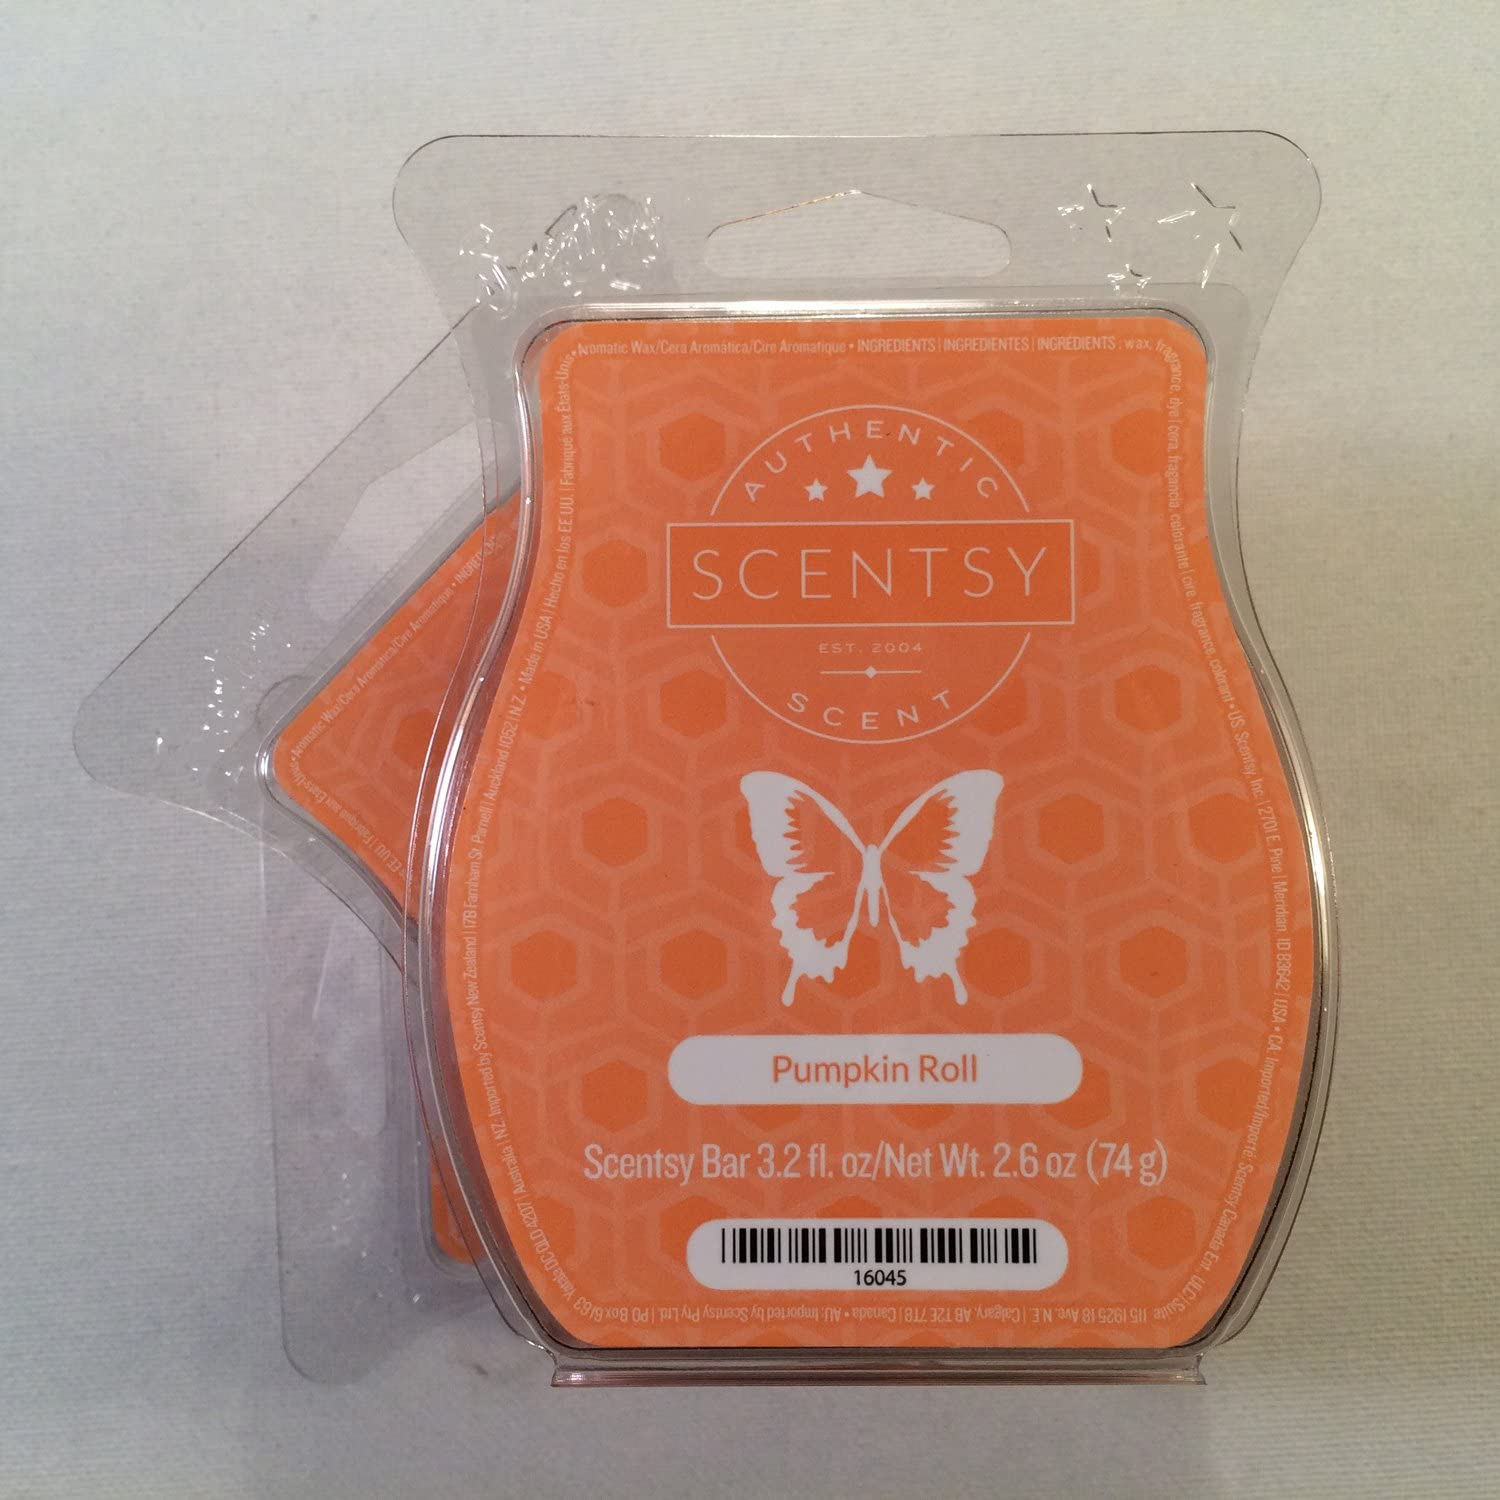 Scentsy, Pumpkin Roll, Wickless Candle Tart Warmer Wax 3.2 Oz Bar, 3-pack (3)